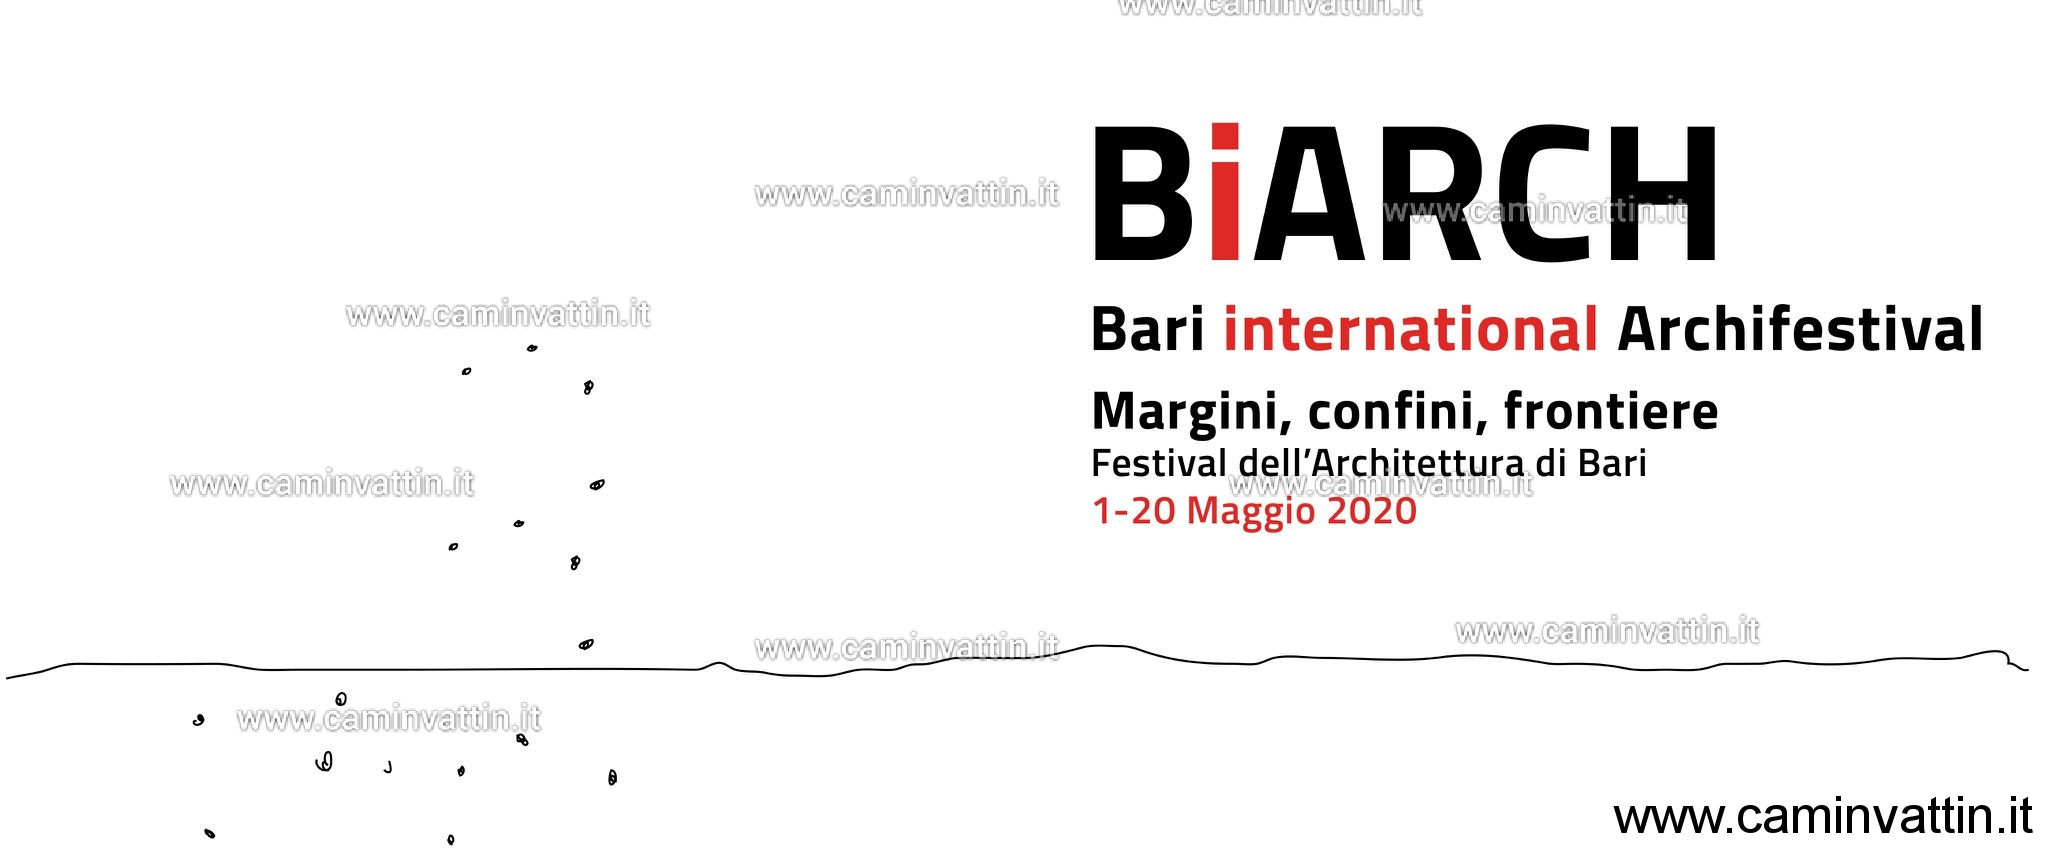 biarch bari international archifestival